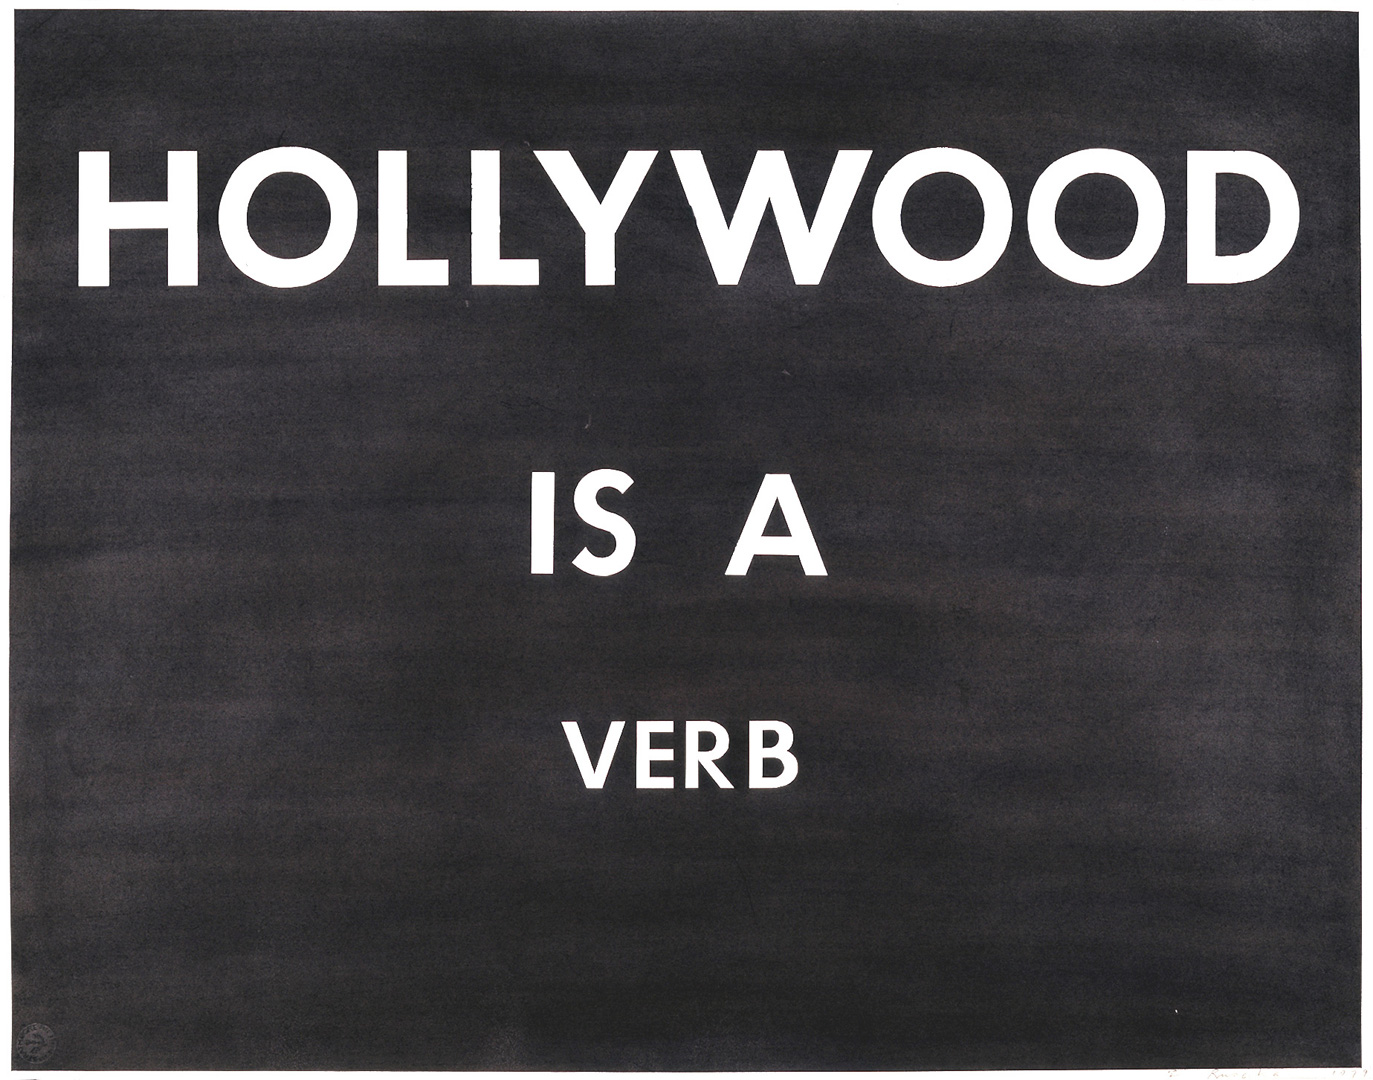 Ed Ruscha - HOLLYWOOD IS A VERB, 1979, pastel on paper